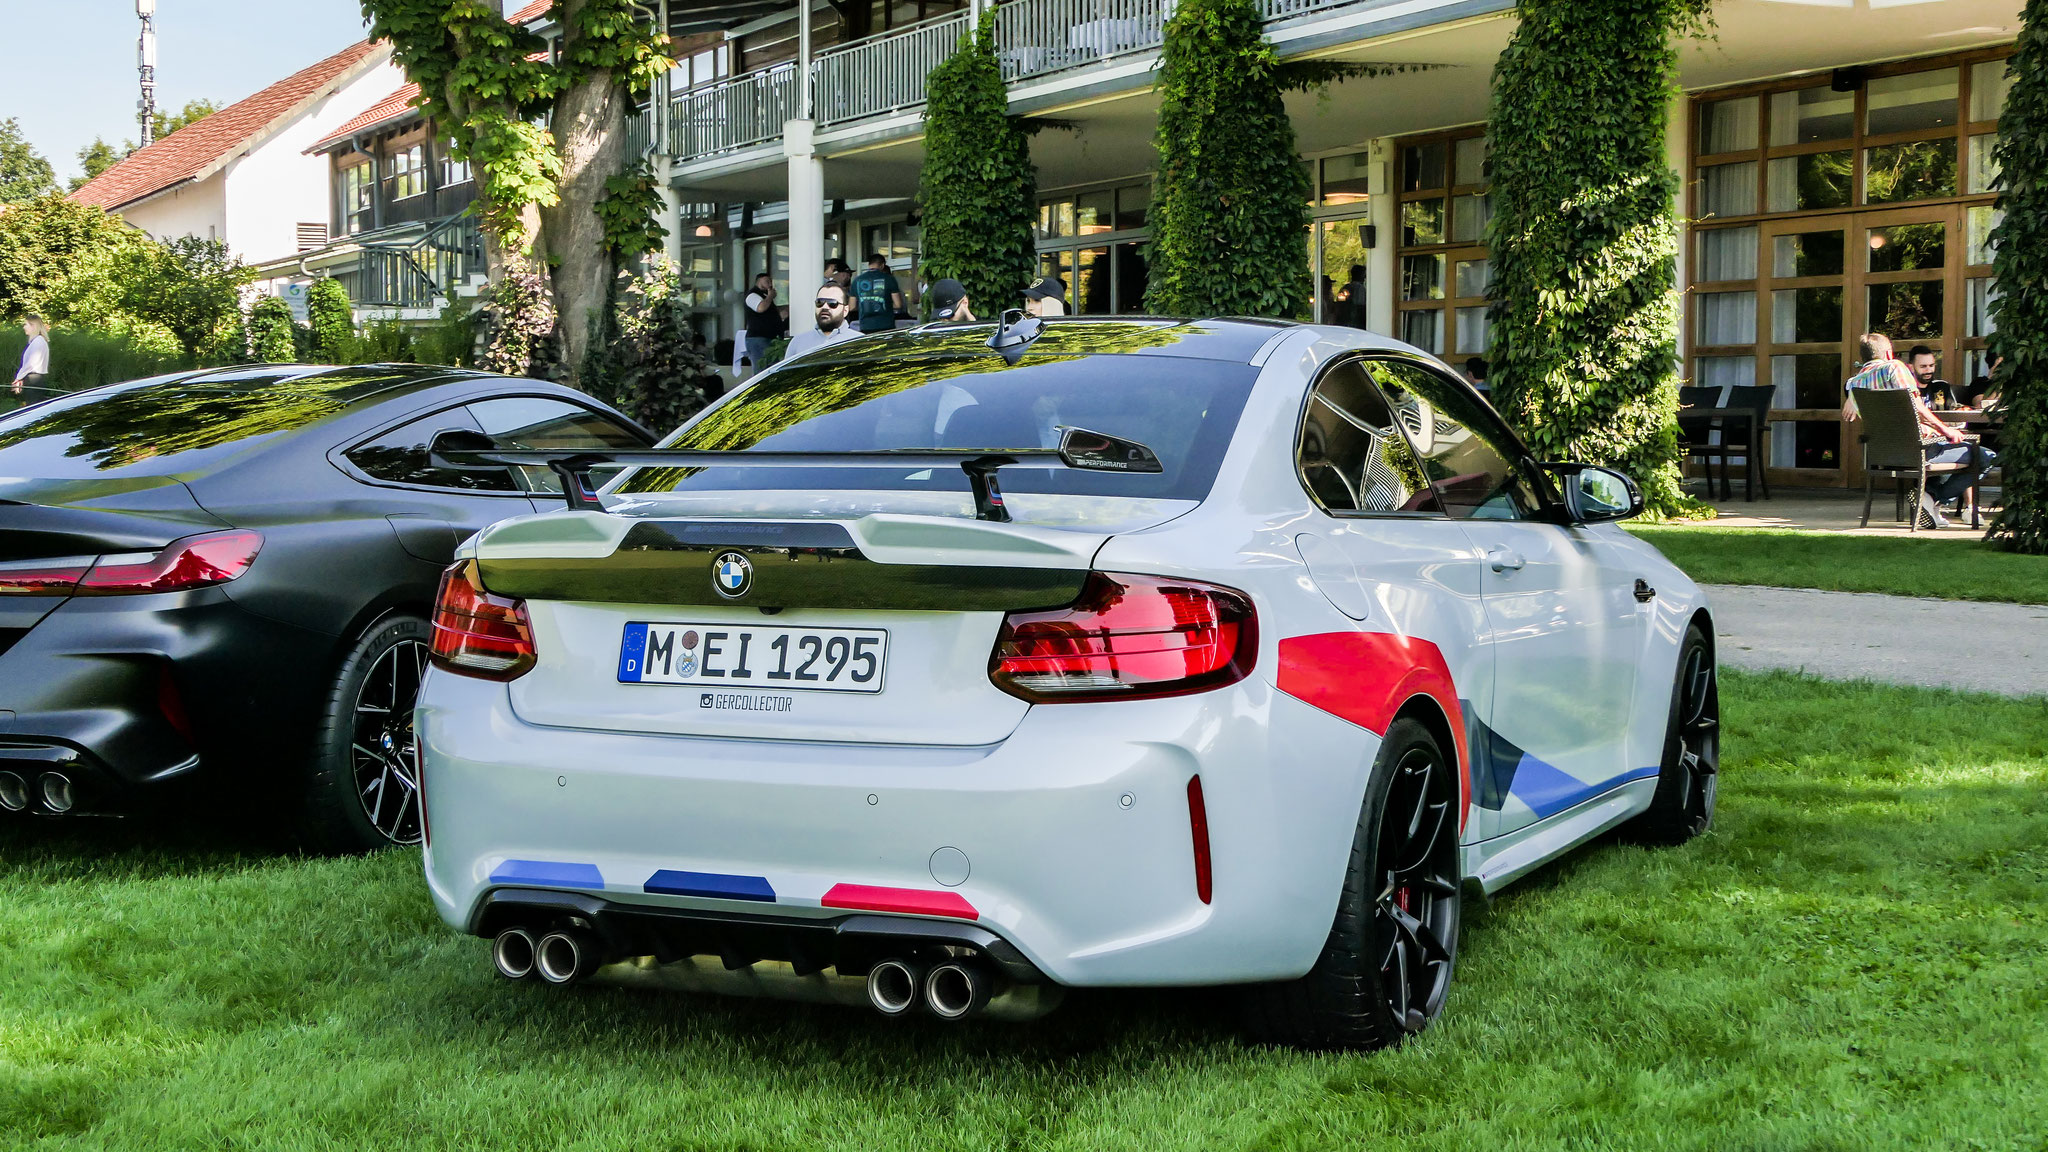 BMW M2 Competition - M-EI-1295